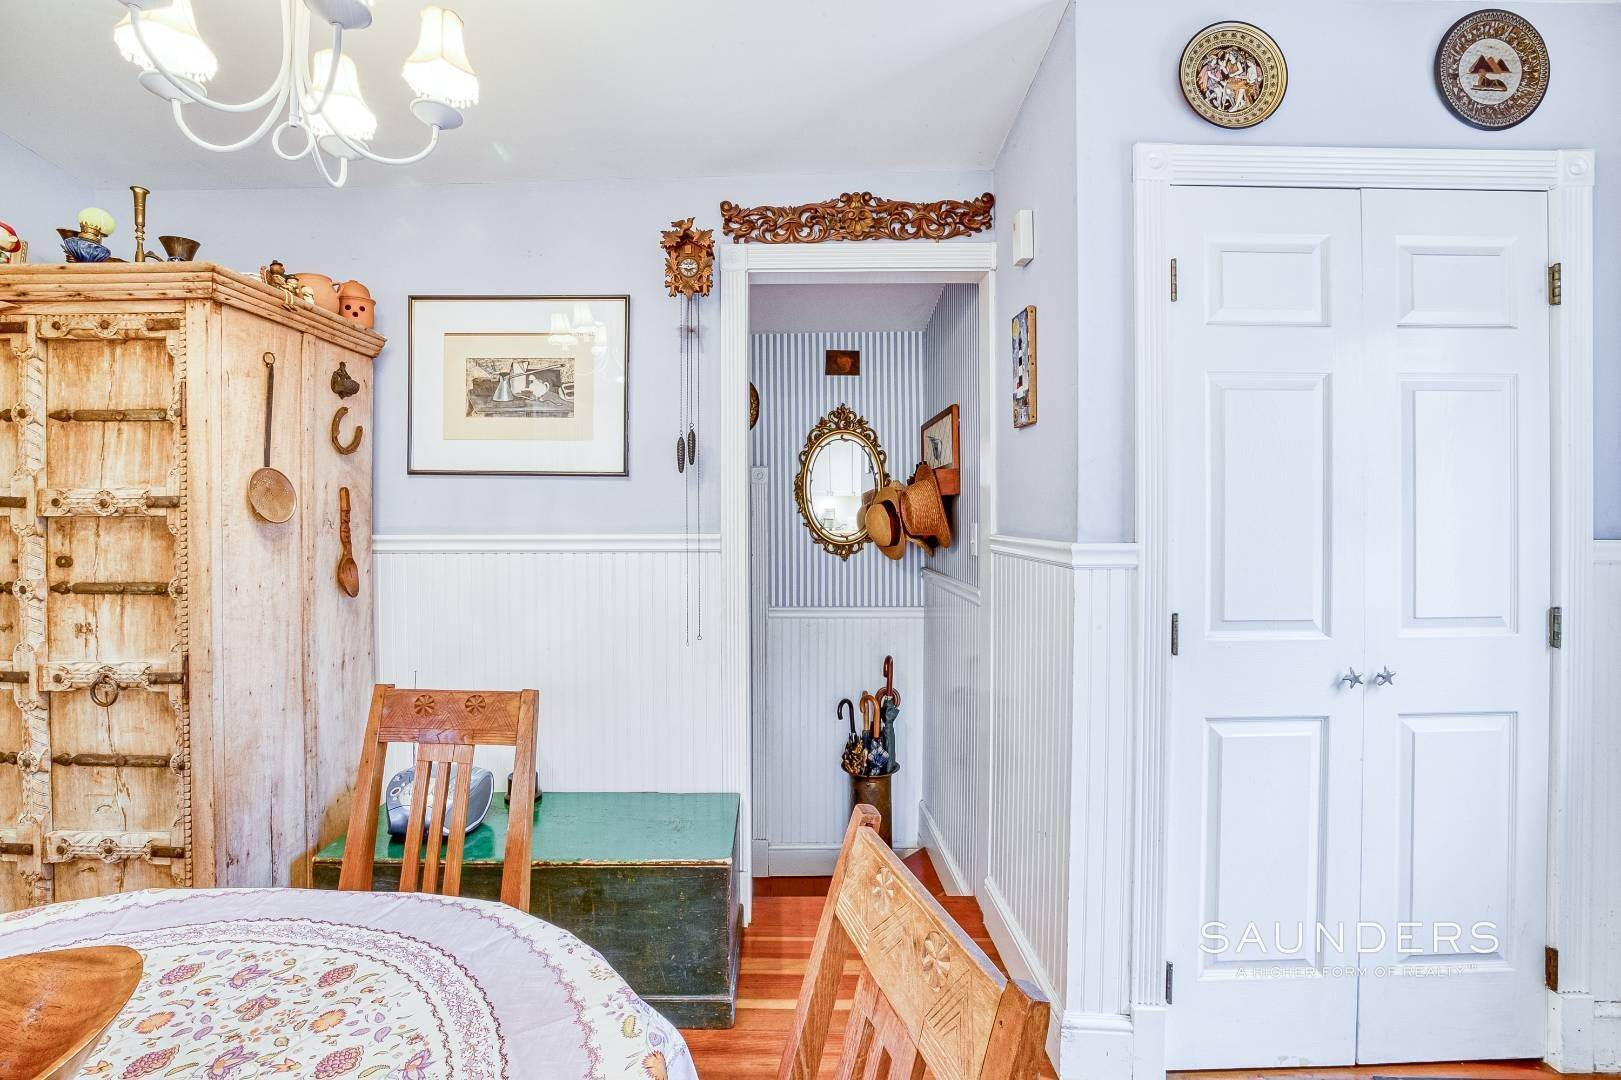 19. Single Family Homes for Sale at Shelter Island 1899 Farmhouse Close To Beach-Business Zoned 33 West Neck Road, Shelter Island Heights, Shelter Island, NY 11964